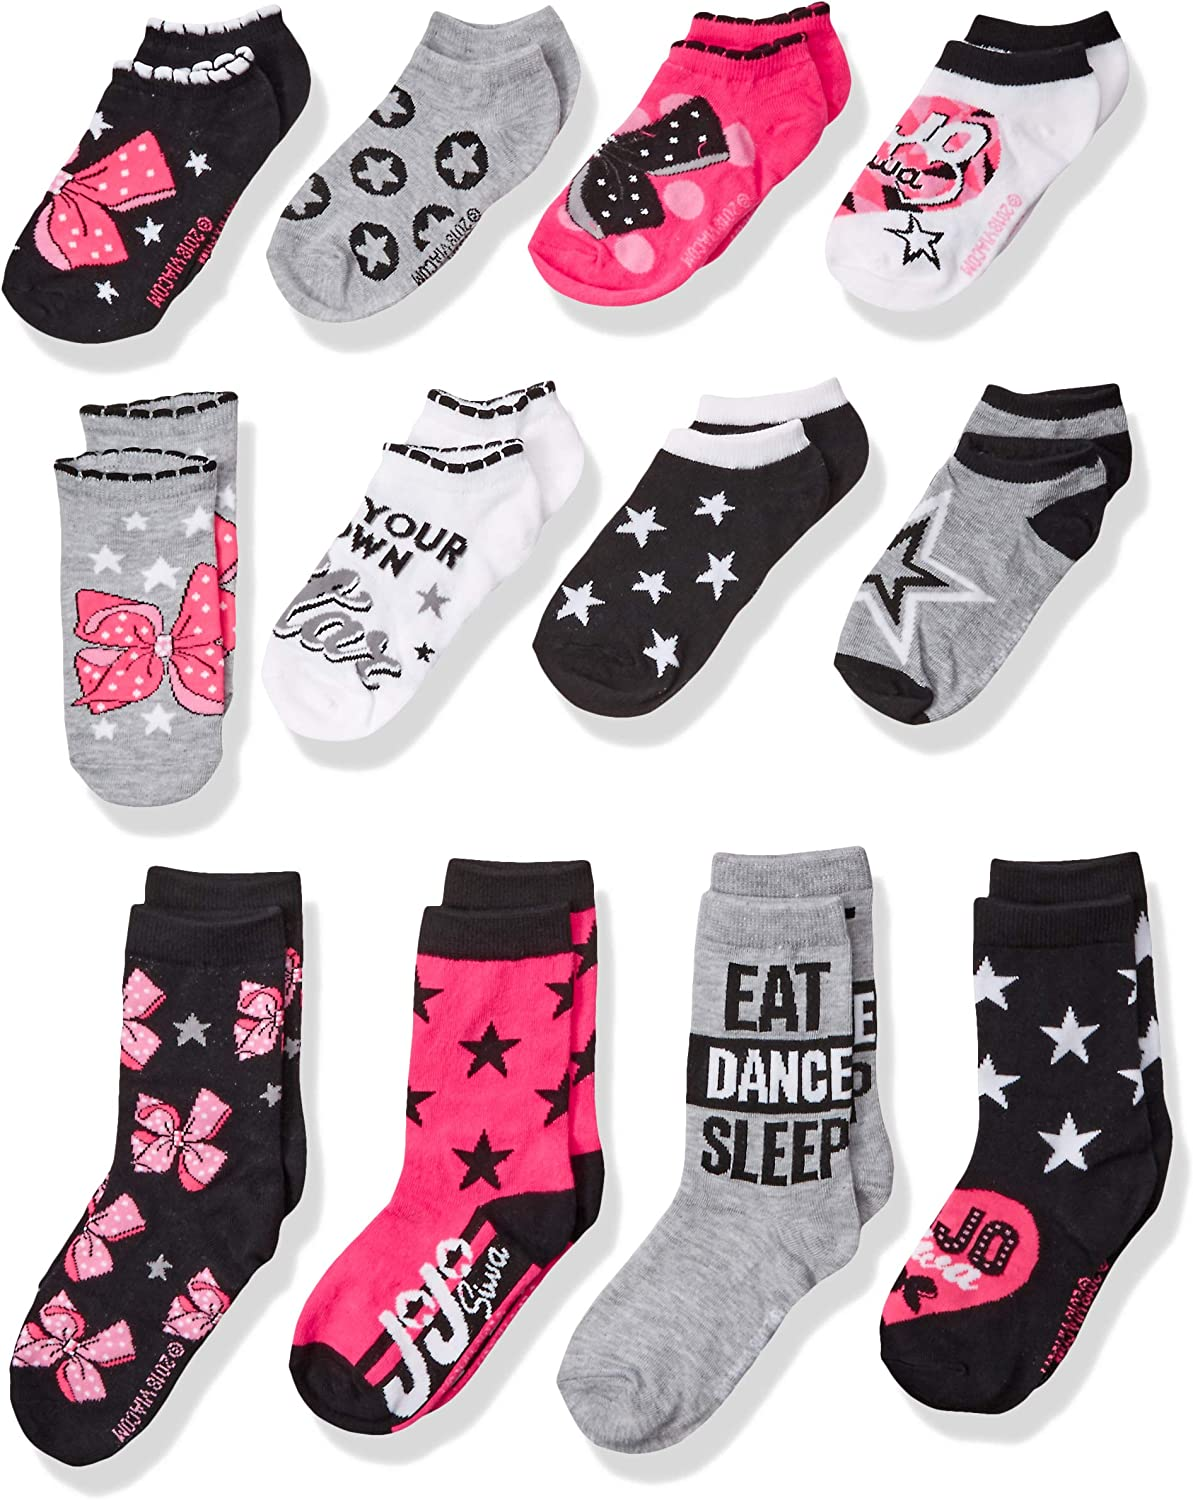 JoJo Siwa 12 Days Of Socks of CHRISTMAS Advent Box M Girls NICKELODEON